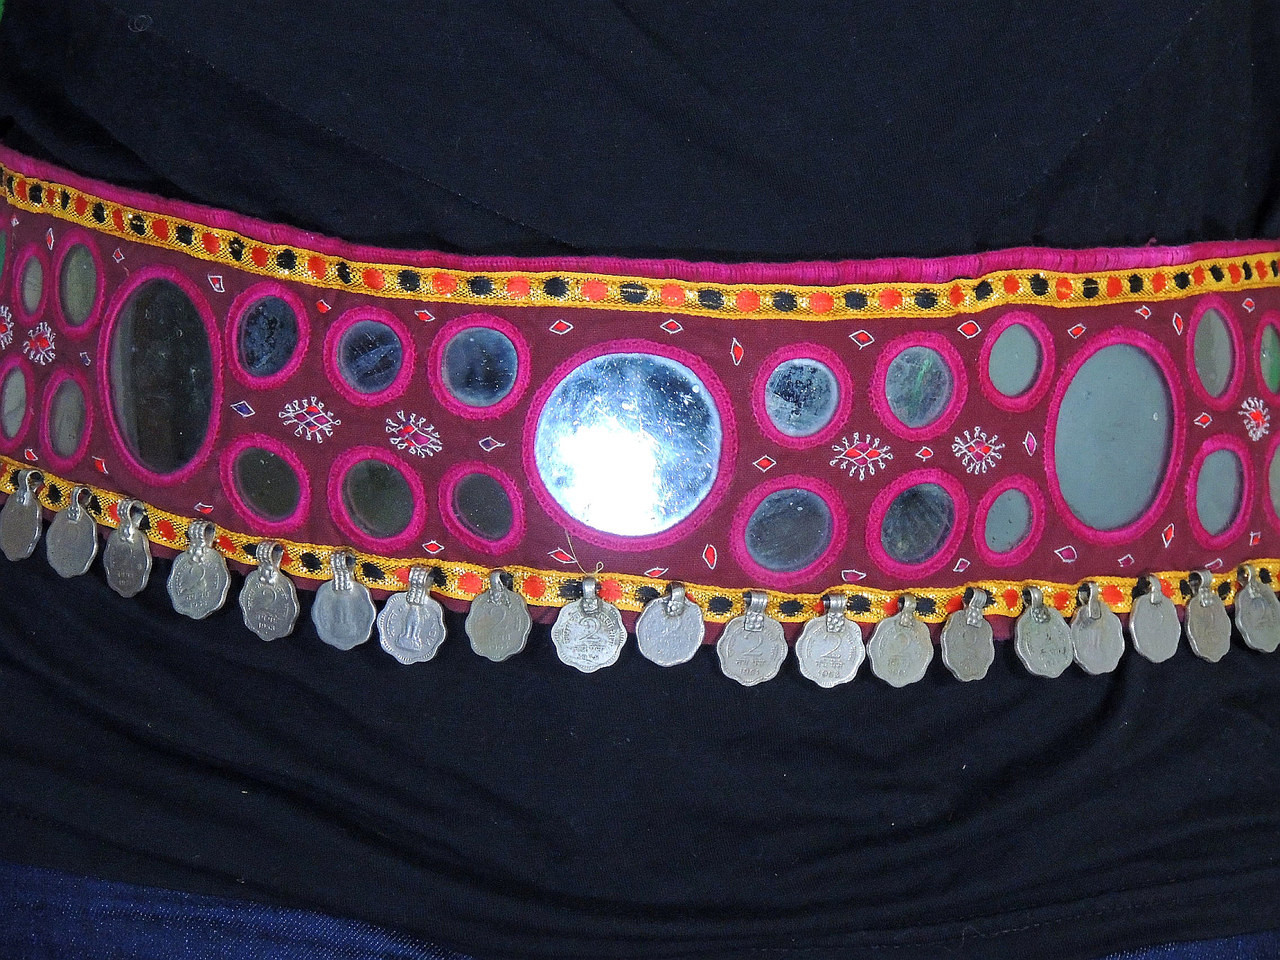 f07032ba1 Ethnic Tribal Belly Dancing Belt - Coin Mirror Work Handmade Accessory ~  One Size; Image 2; Image 3